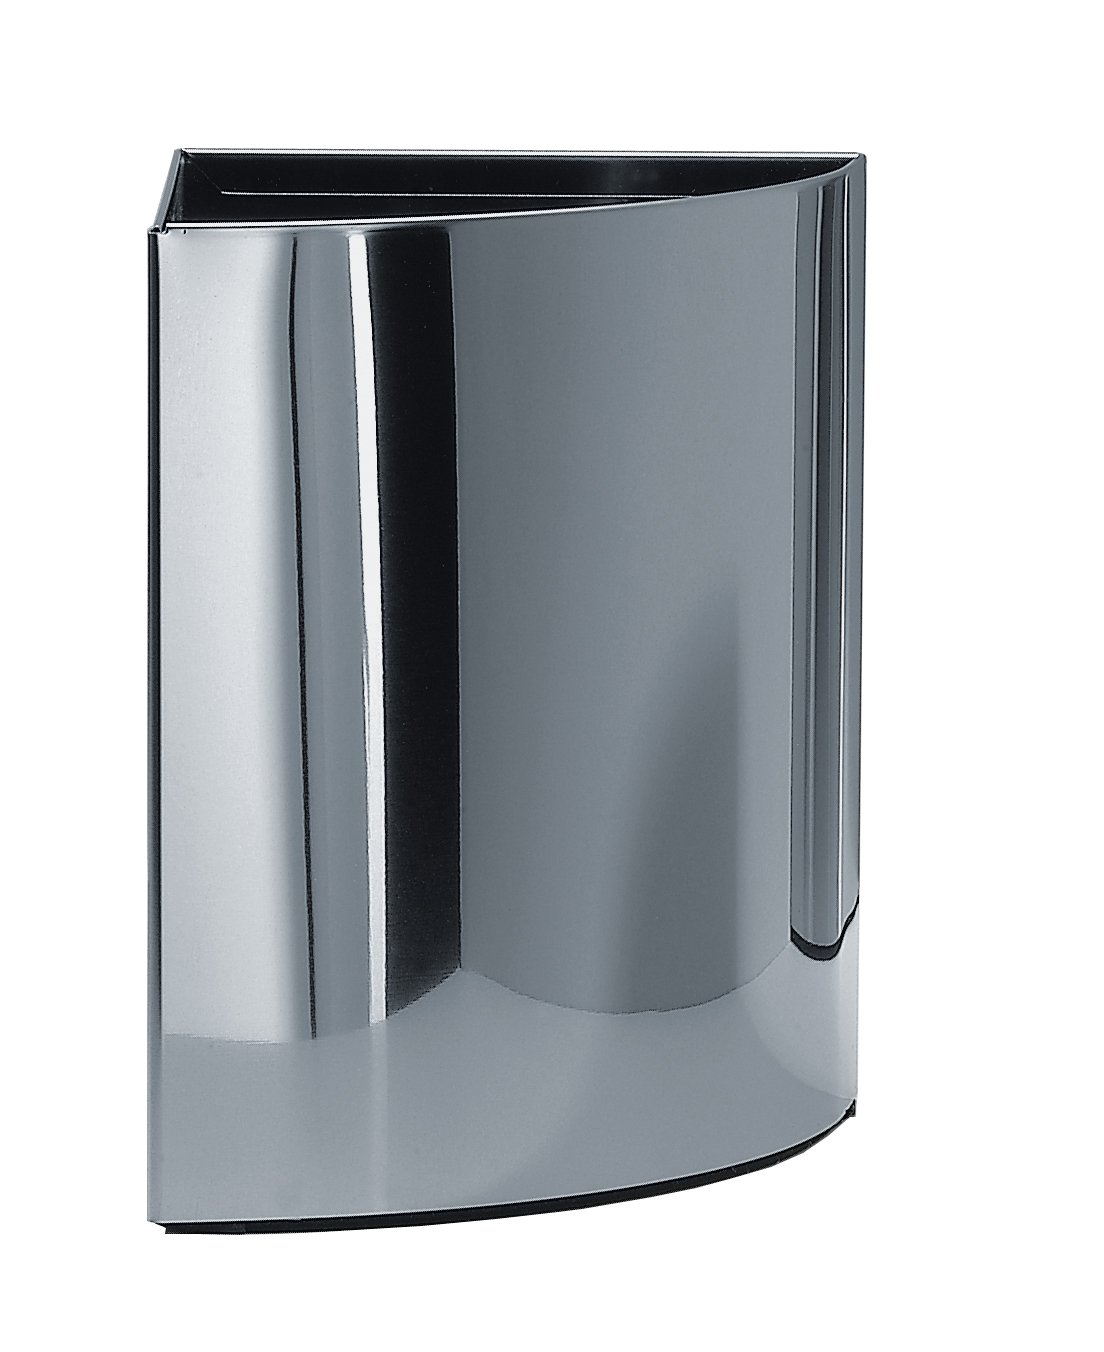 Walther Round Stainless Steel Corner Waste Can/ Wastebaske/ Trash Can Open Top. Trash Can Waste Receptacles Container. Waste Bin. Polished Chrome